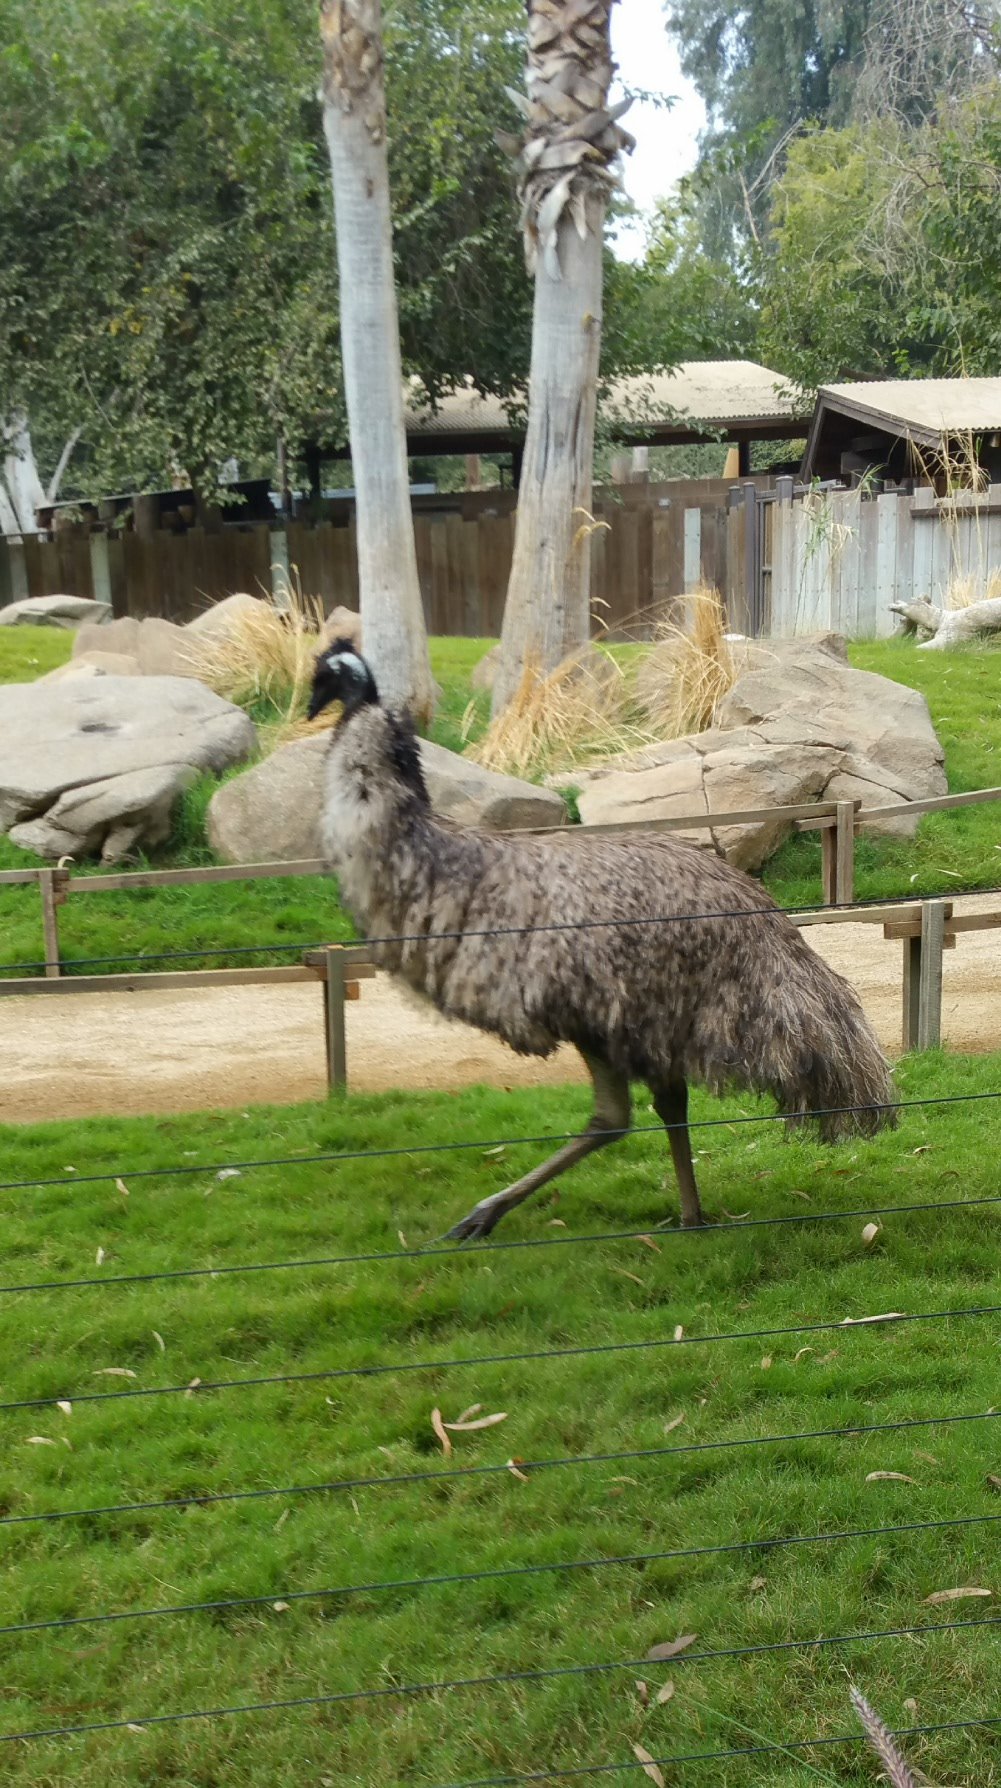 Emu. Not to be confused with Emo.